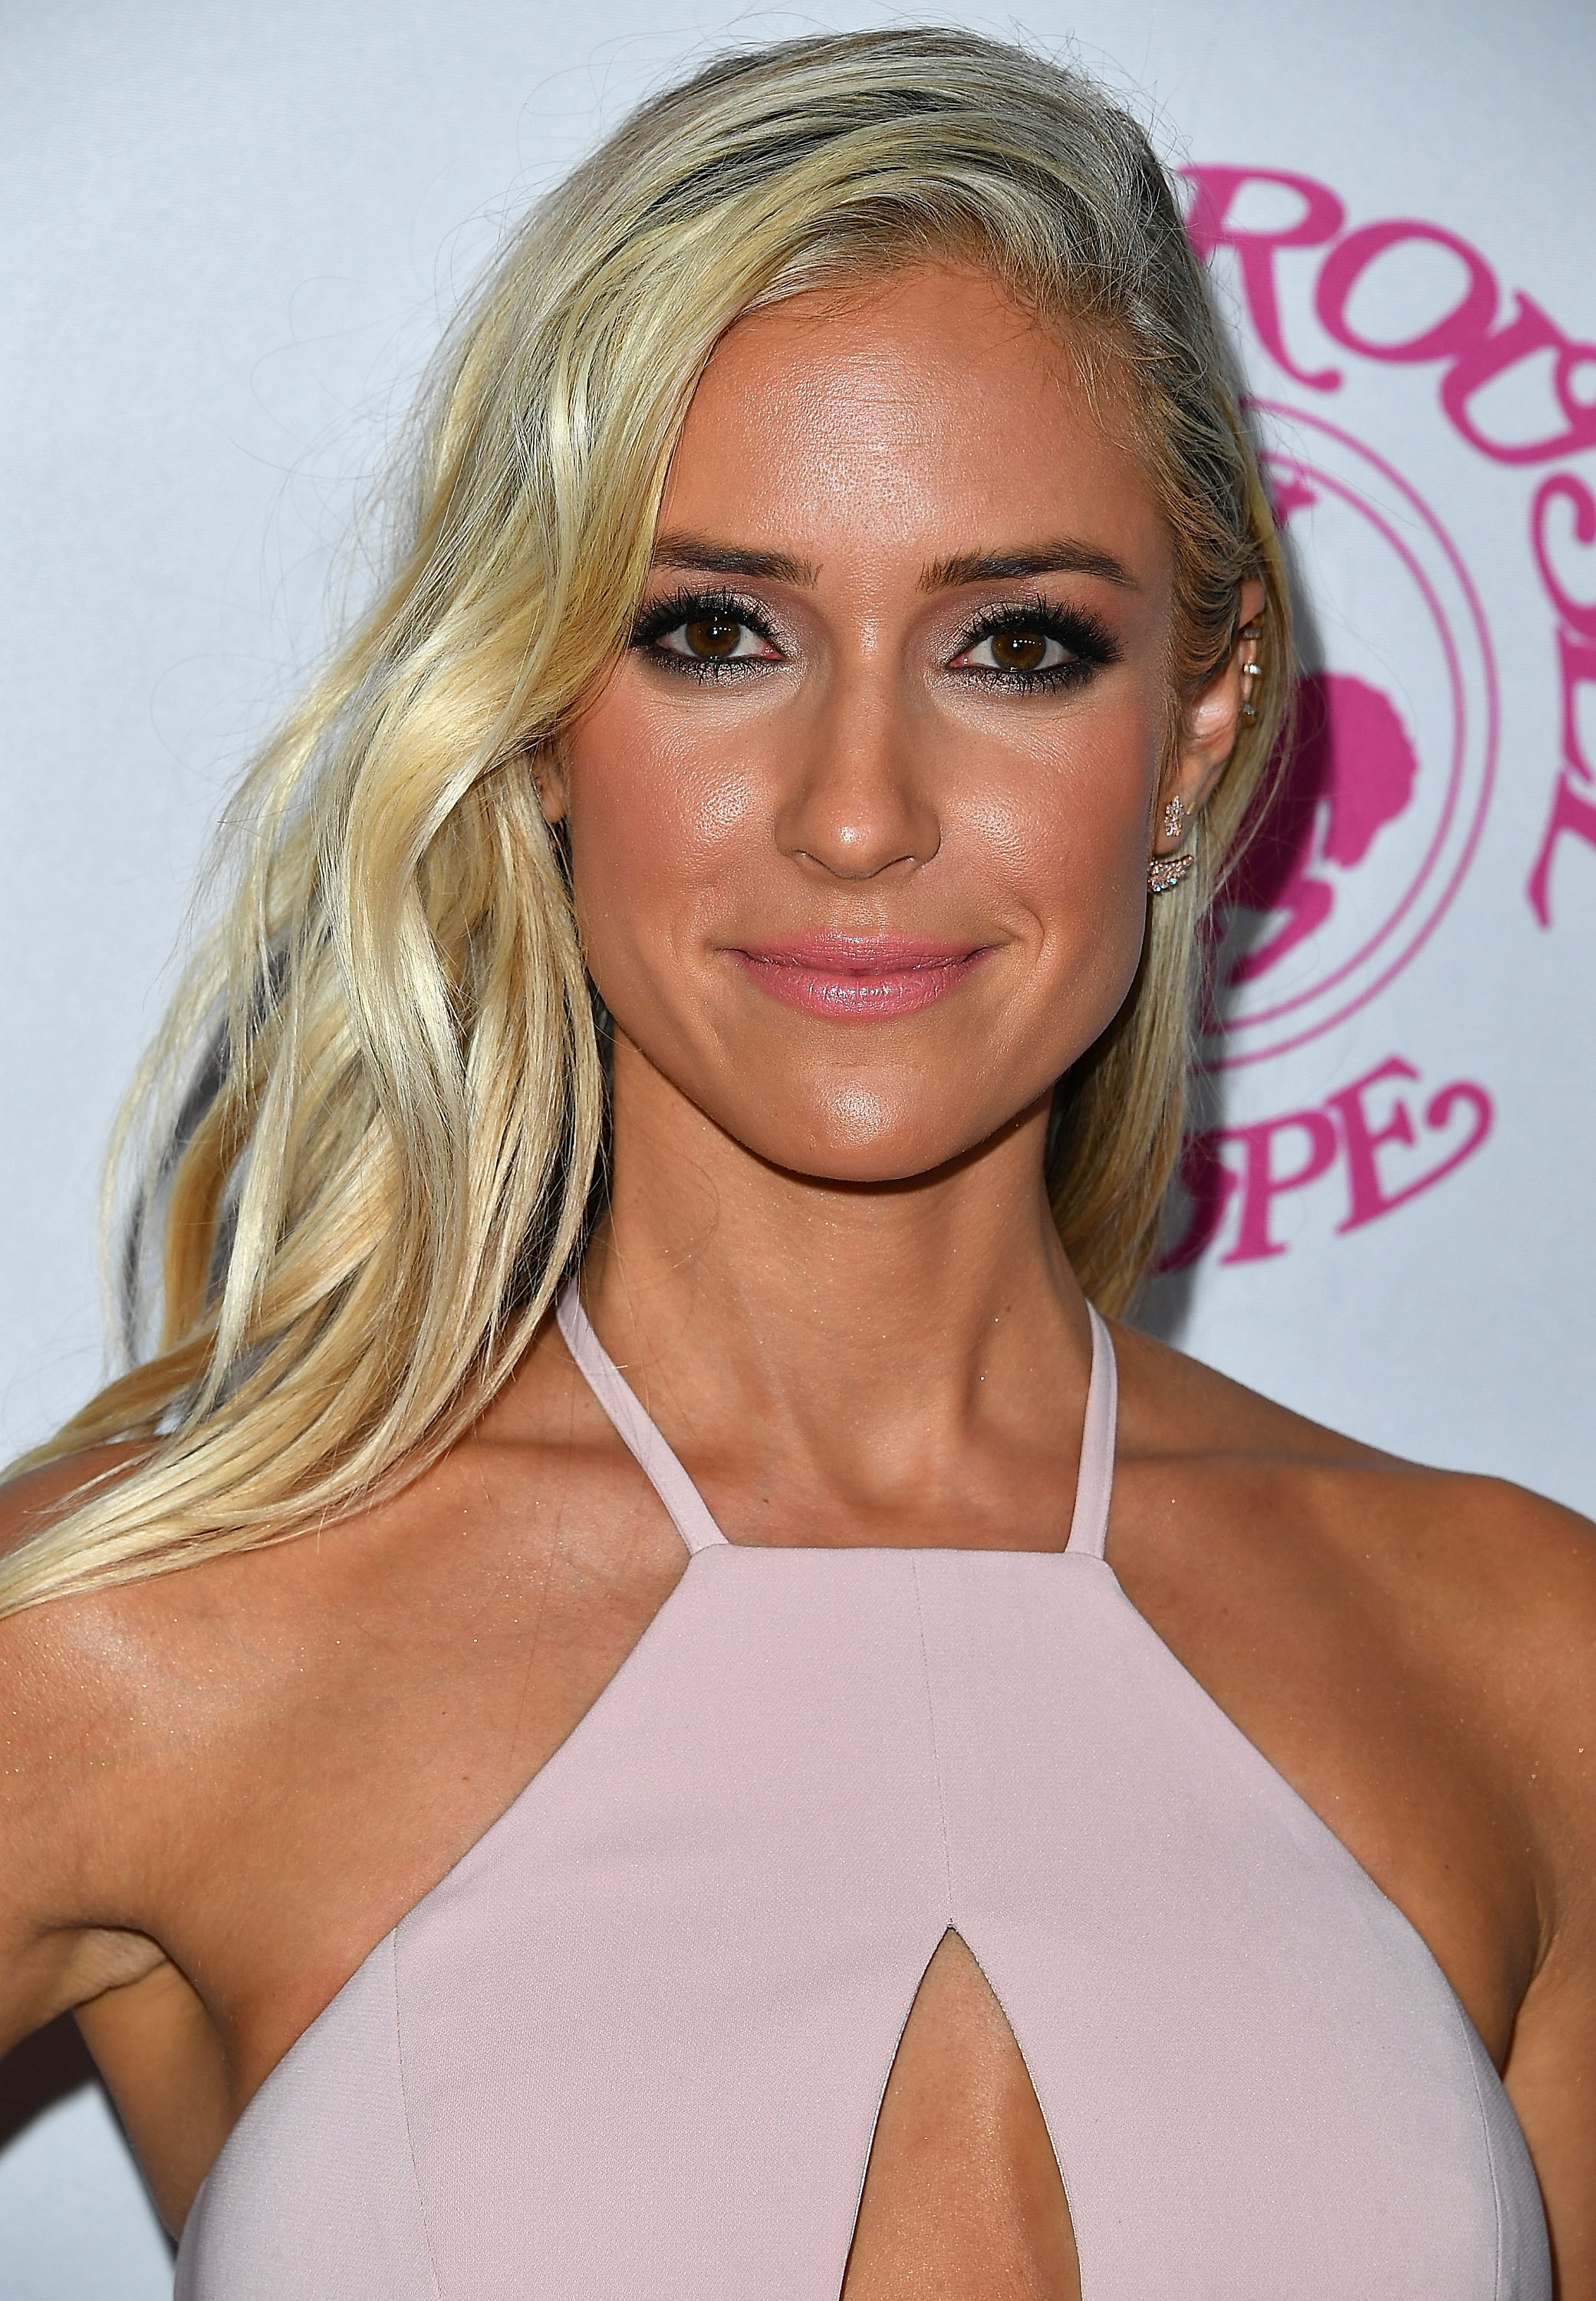 Kristin Cavallari Goes Platinum Blonde Changing Her Hair For The First Time Since Quot Laguna Beach